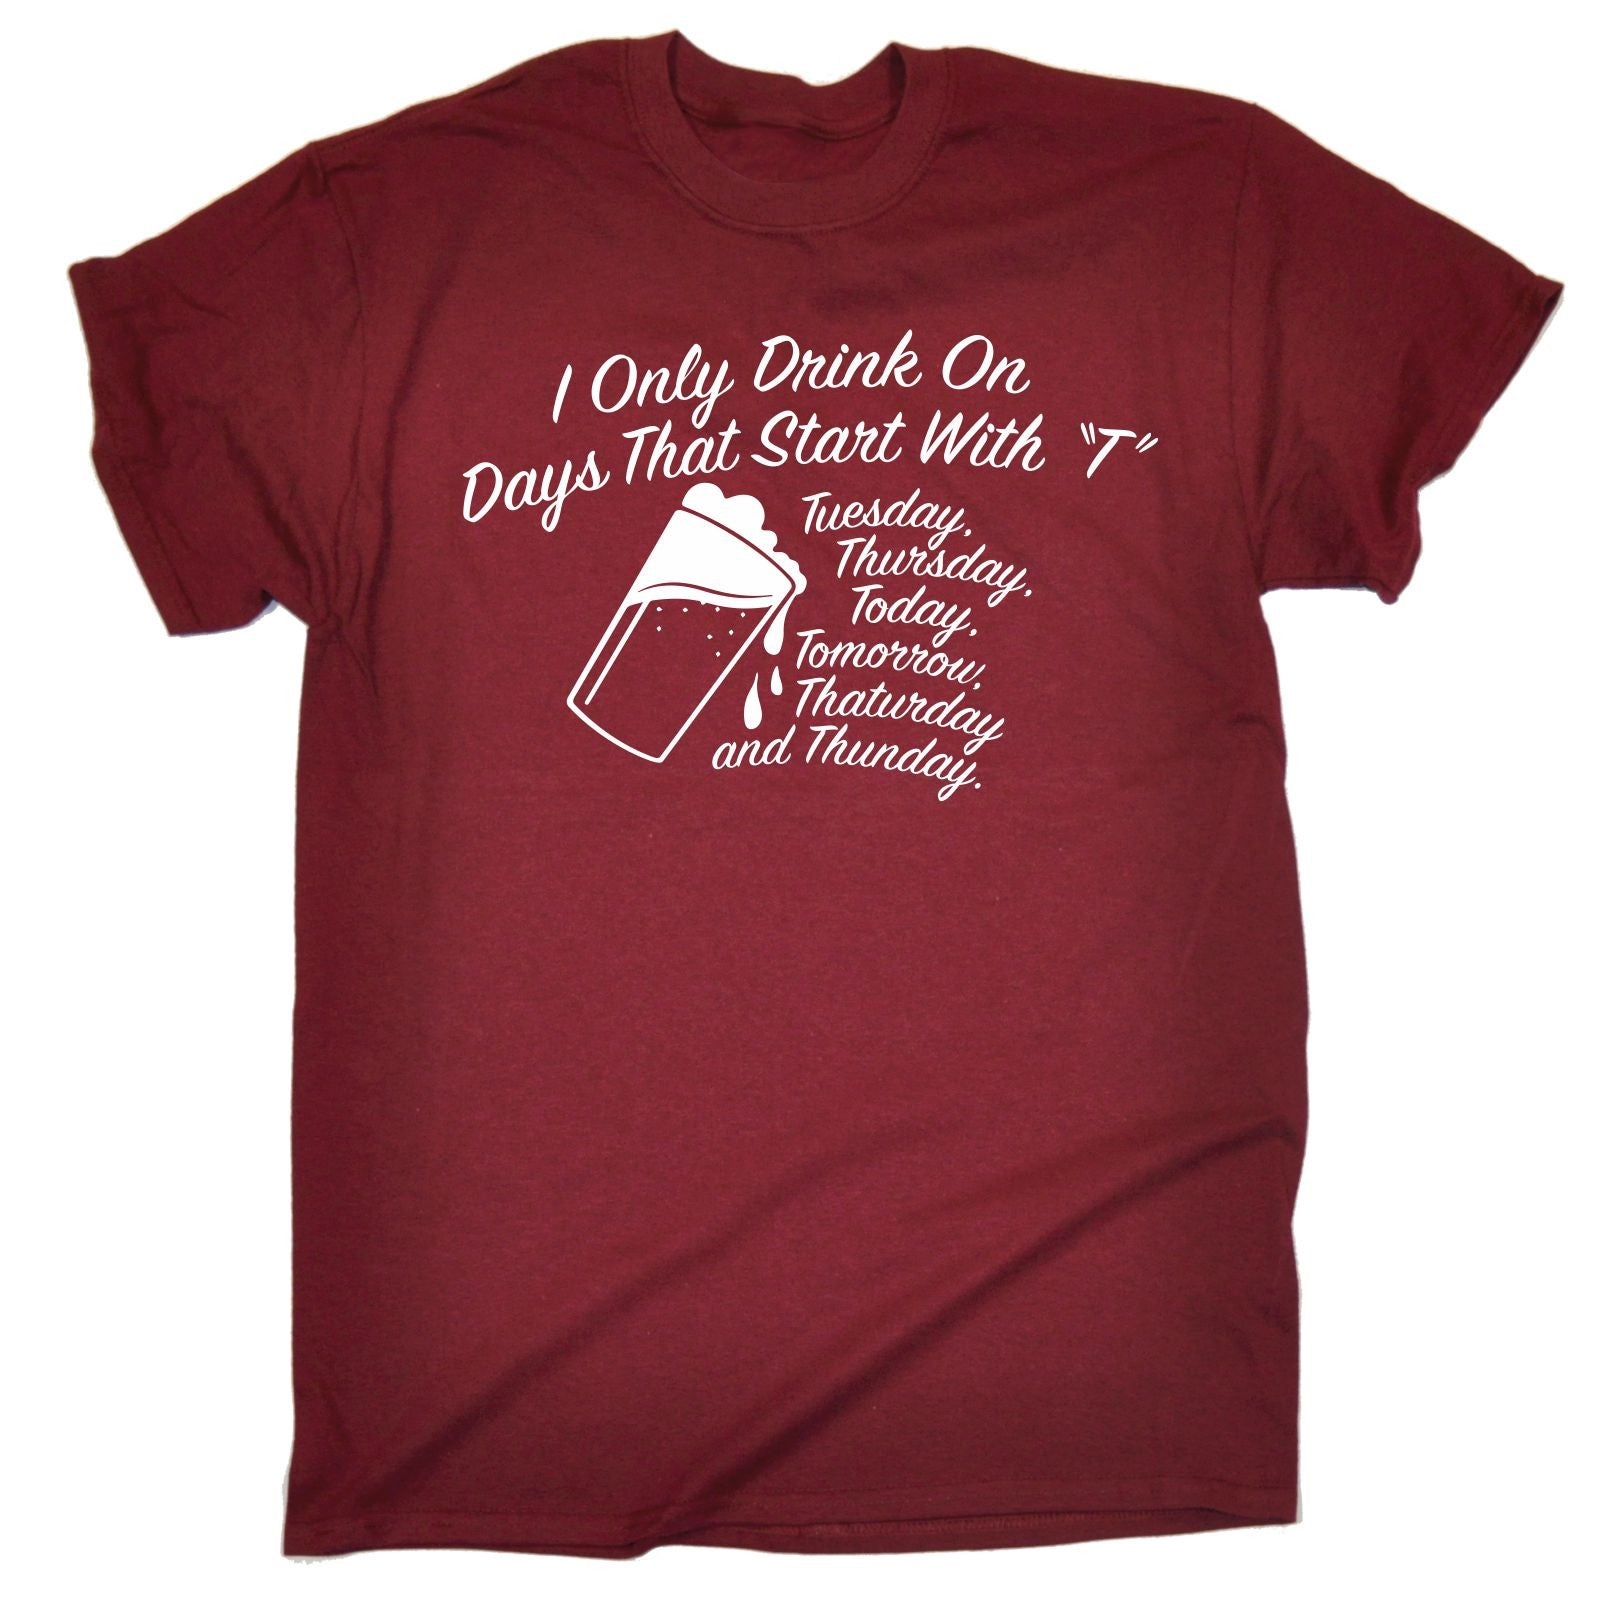 i only drink on days that start with t shirt beer wine. Black Bedroom Furniture Sets. Home Design Ideas